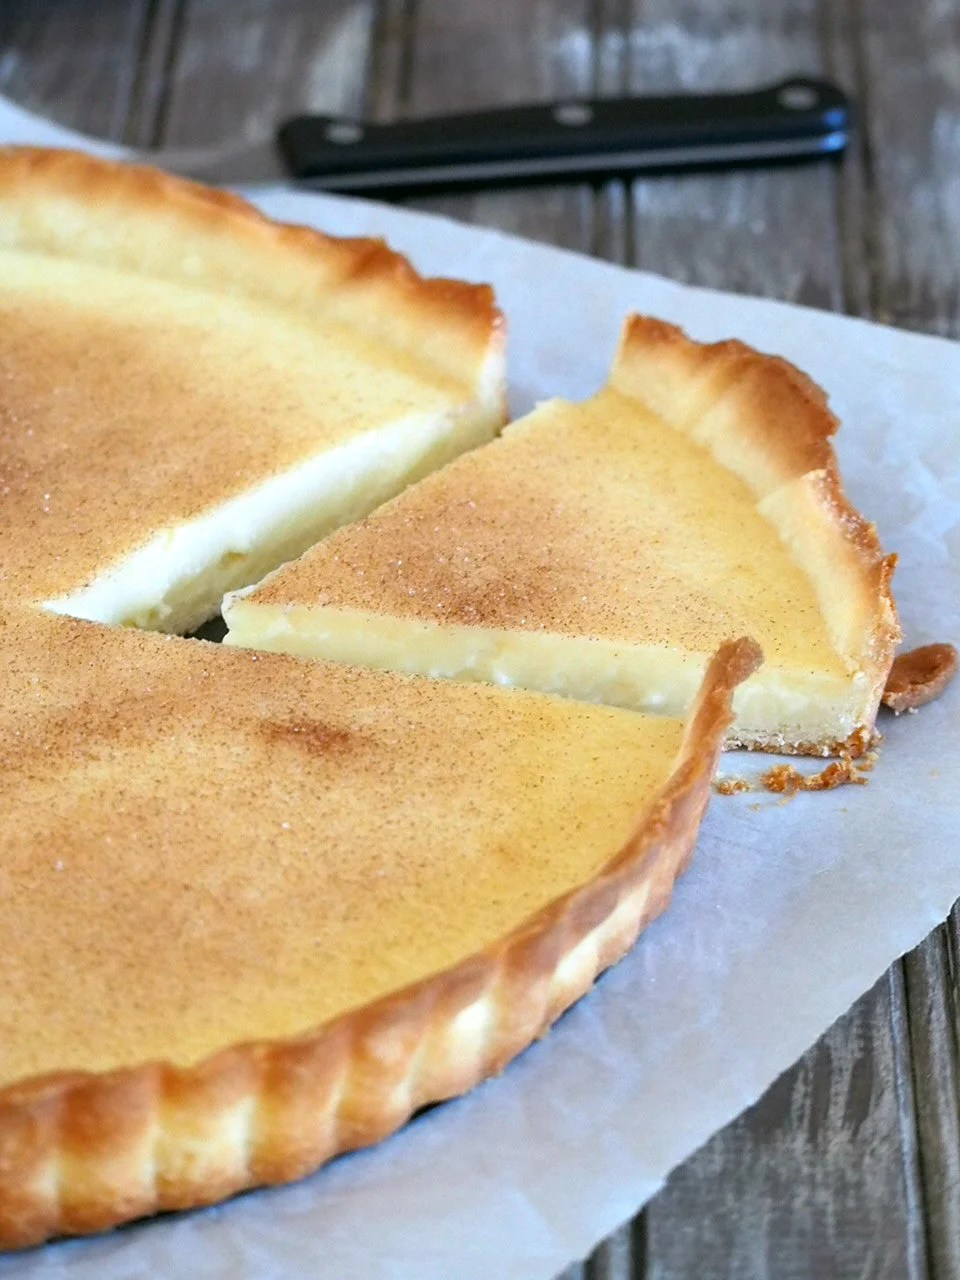 Milk Tart is a simple but delicious dessert that hits just the right spot of sweetness, creaminess and richness with it's milk custard filling.